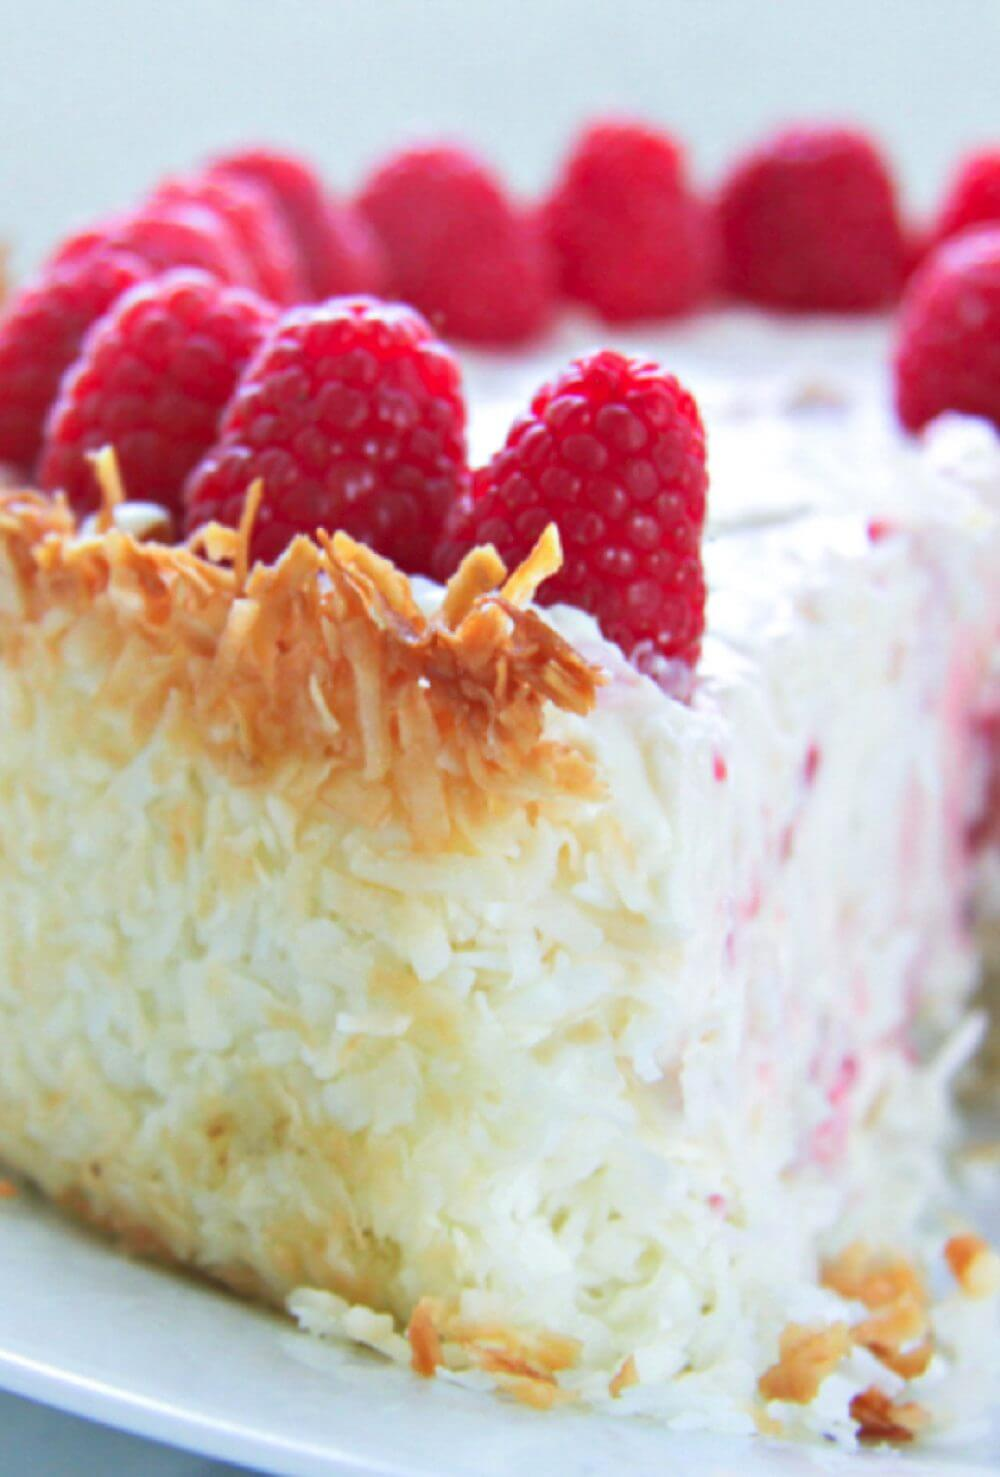 A gorgeous keto cheesecake recipe with raspberries, a hint of lemon and a coconut macaroon crust!